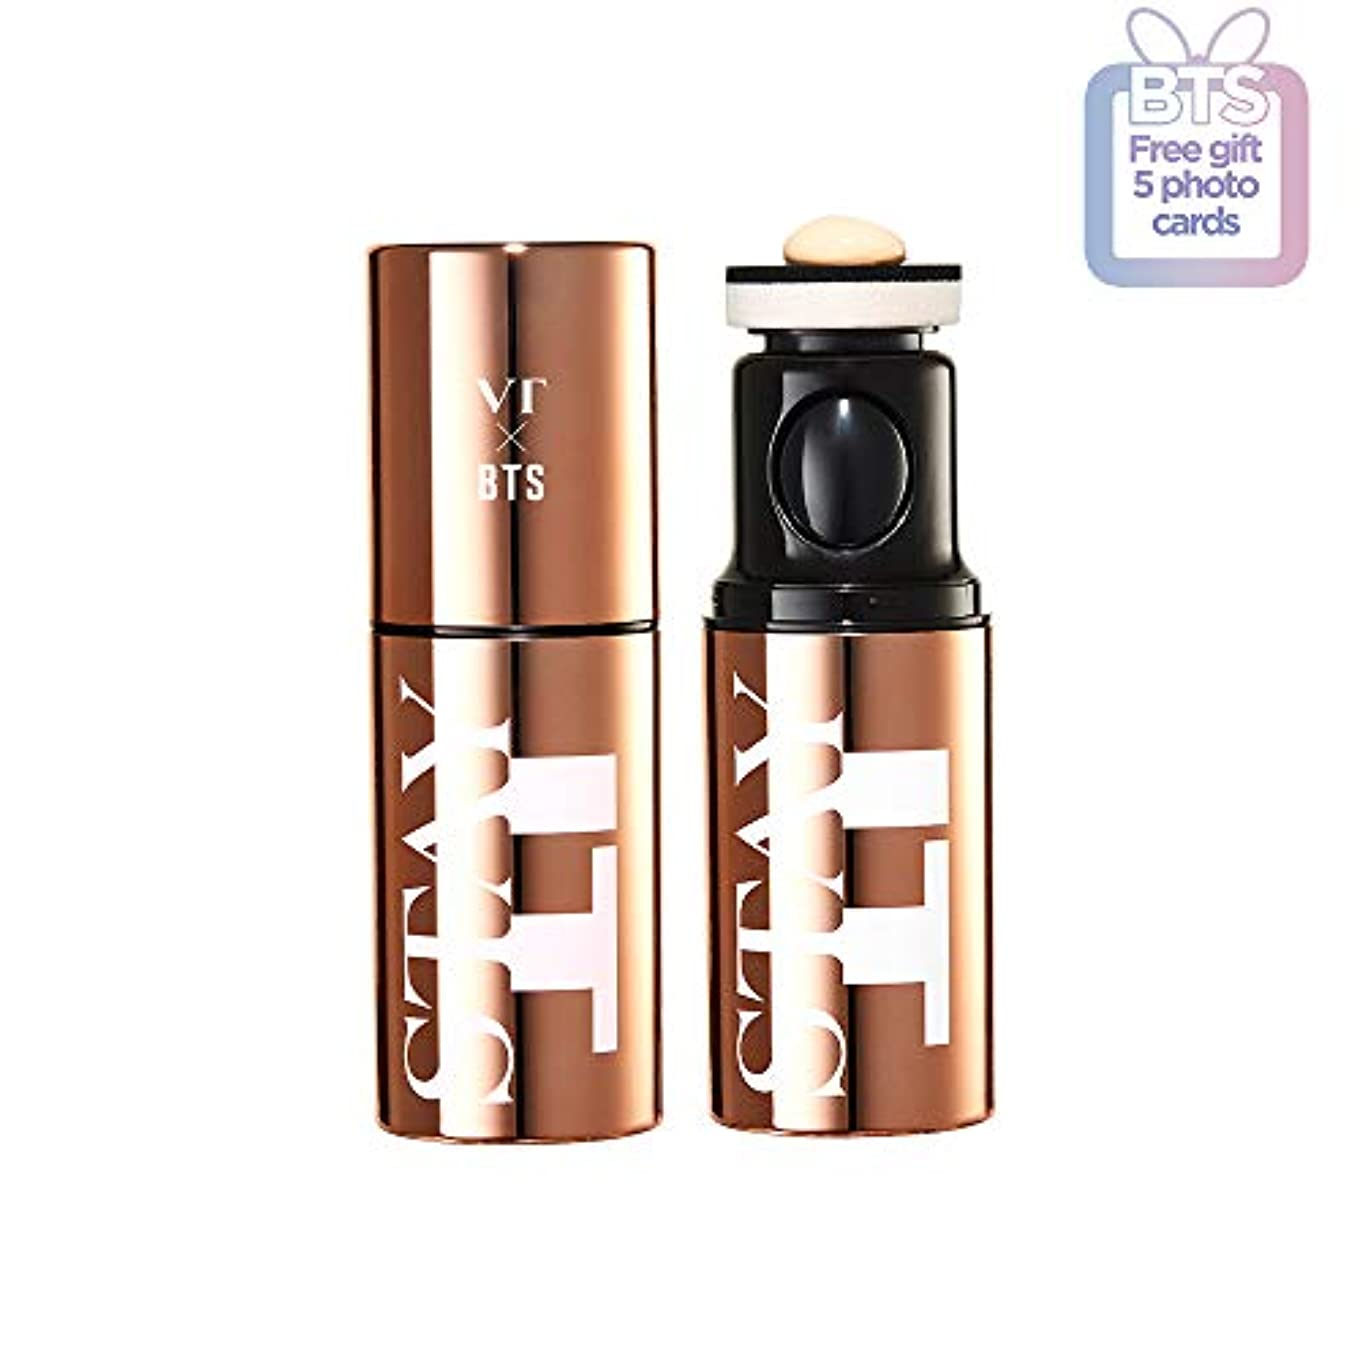 内側冷笑する期待するVT BTS STAY IT TOUCH FOUNDATION 防弾少年団 ファウンデーション (23 Natural Beige) 2019 VT X BTS Edition Season 2 Korean Cosmetics...